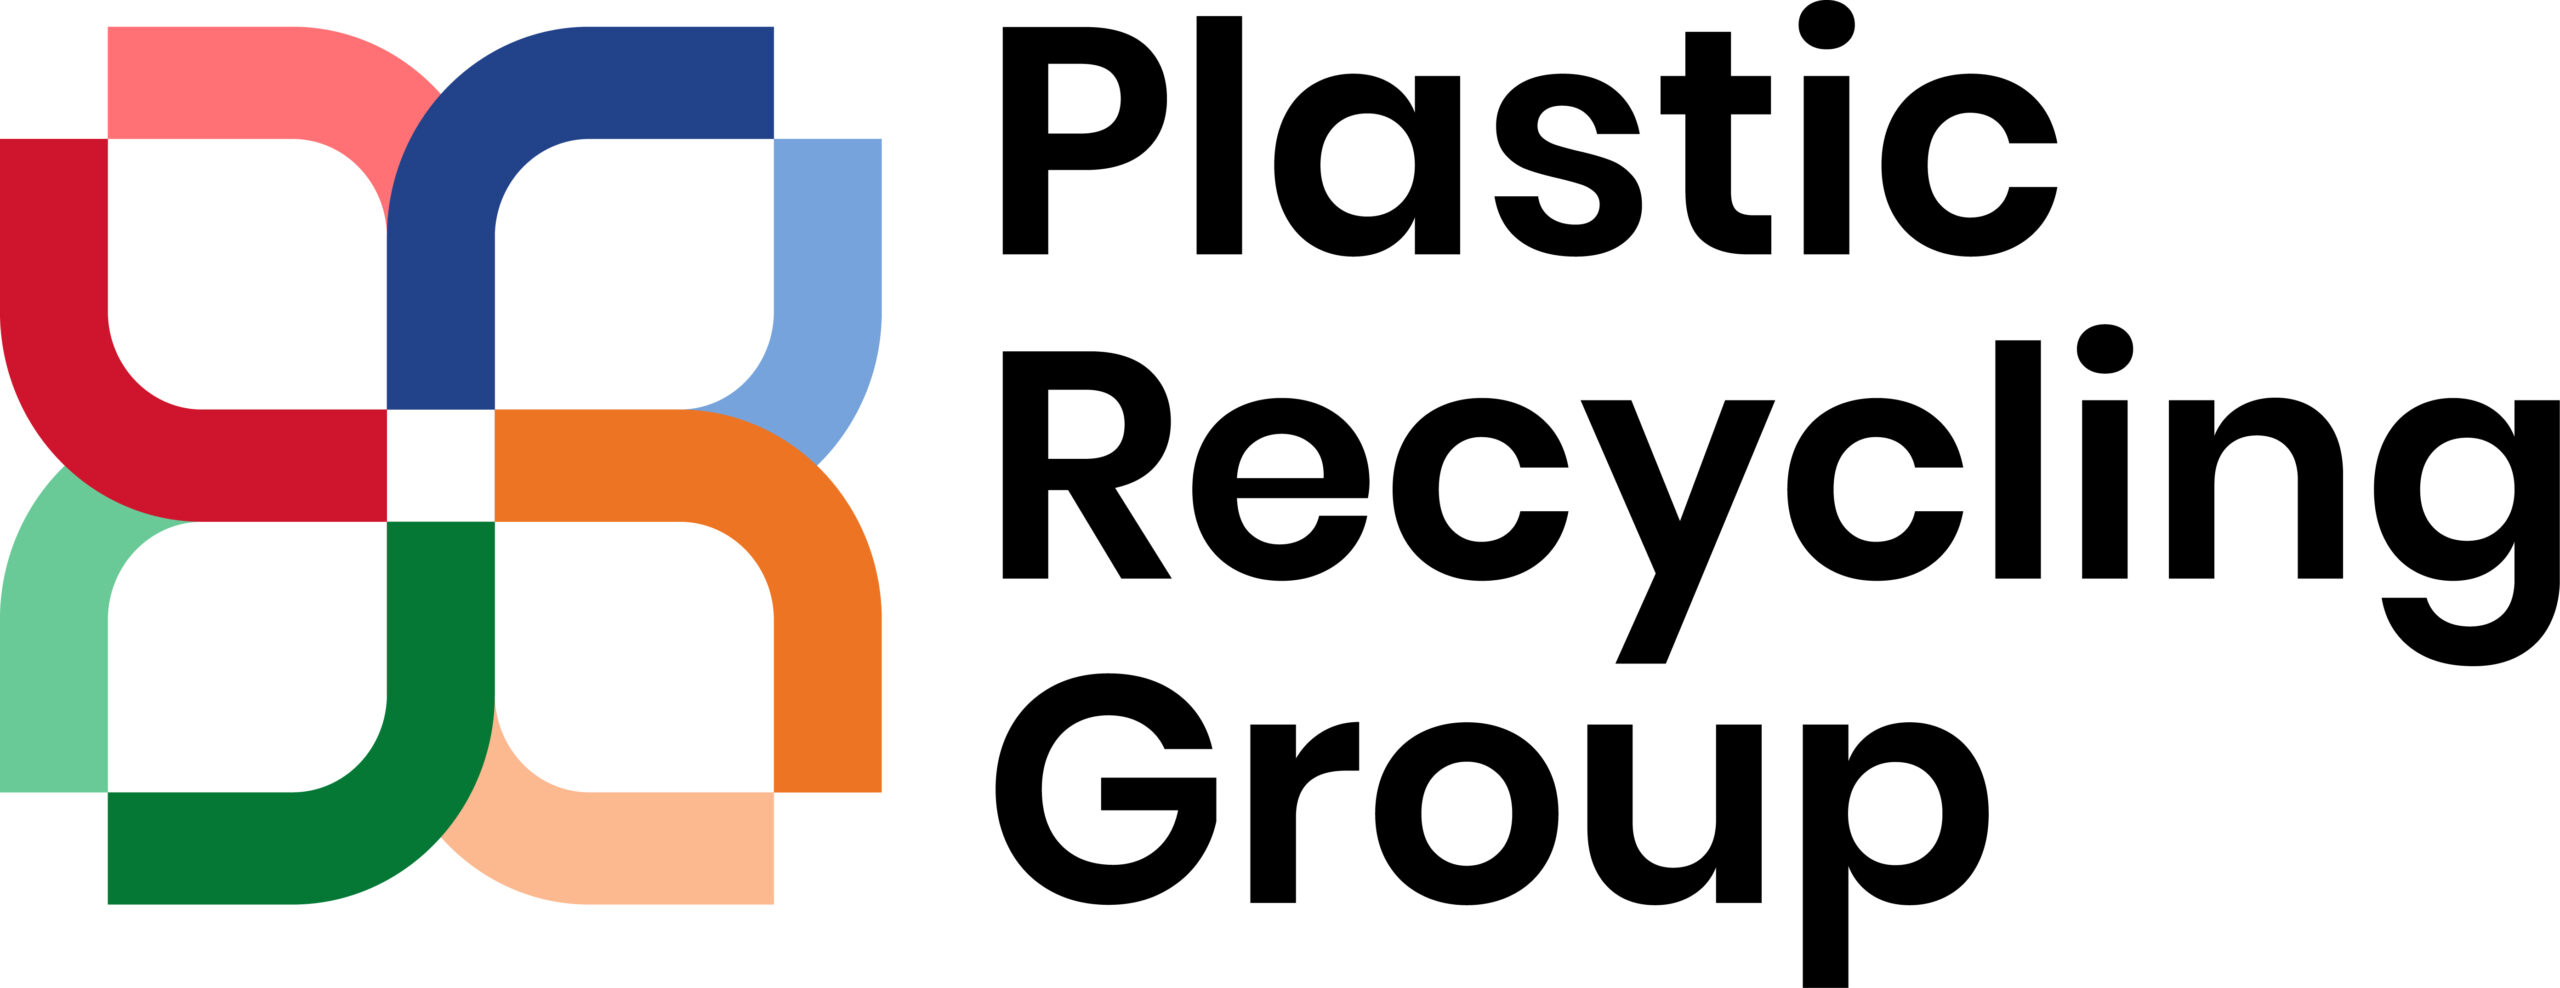 Plastic Recycling Group